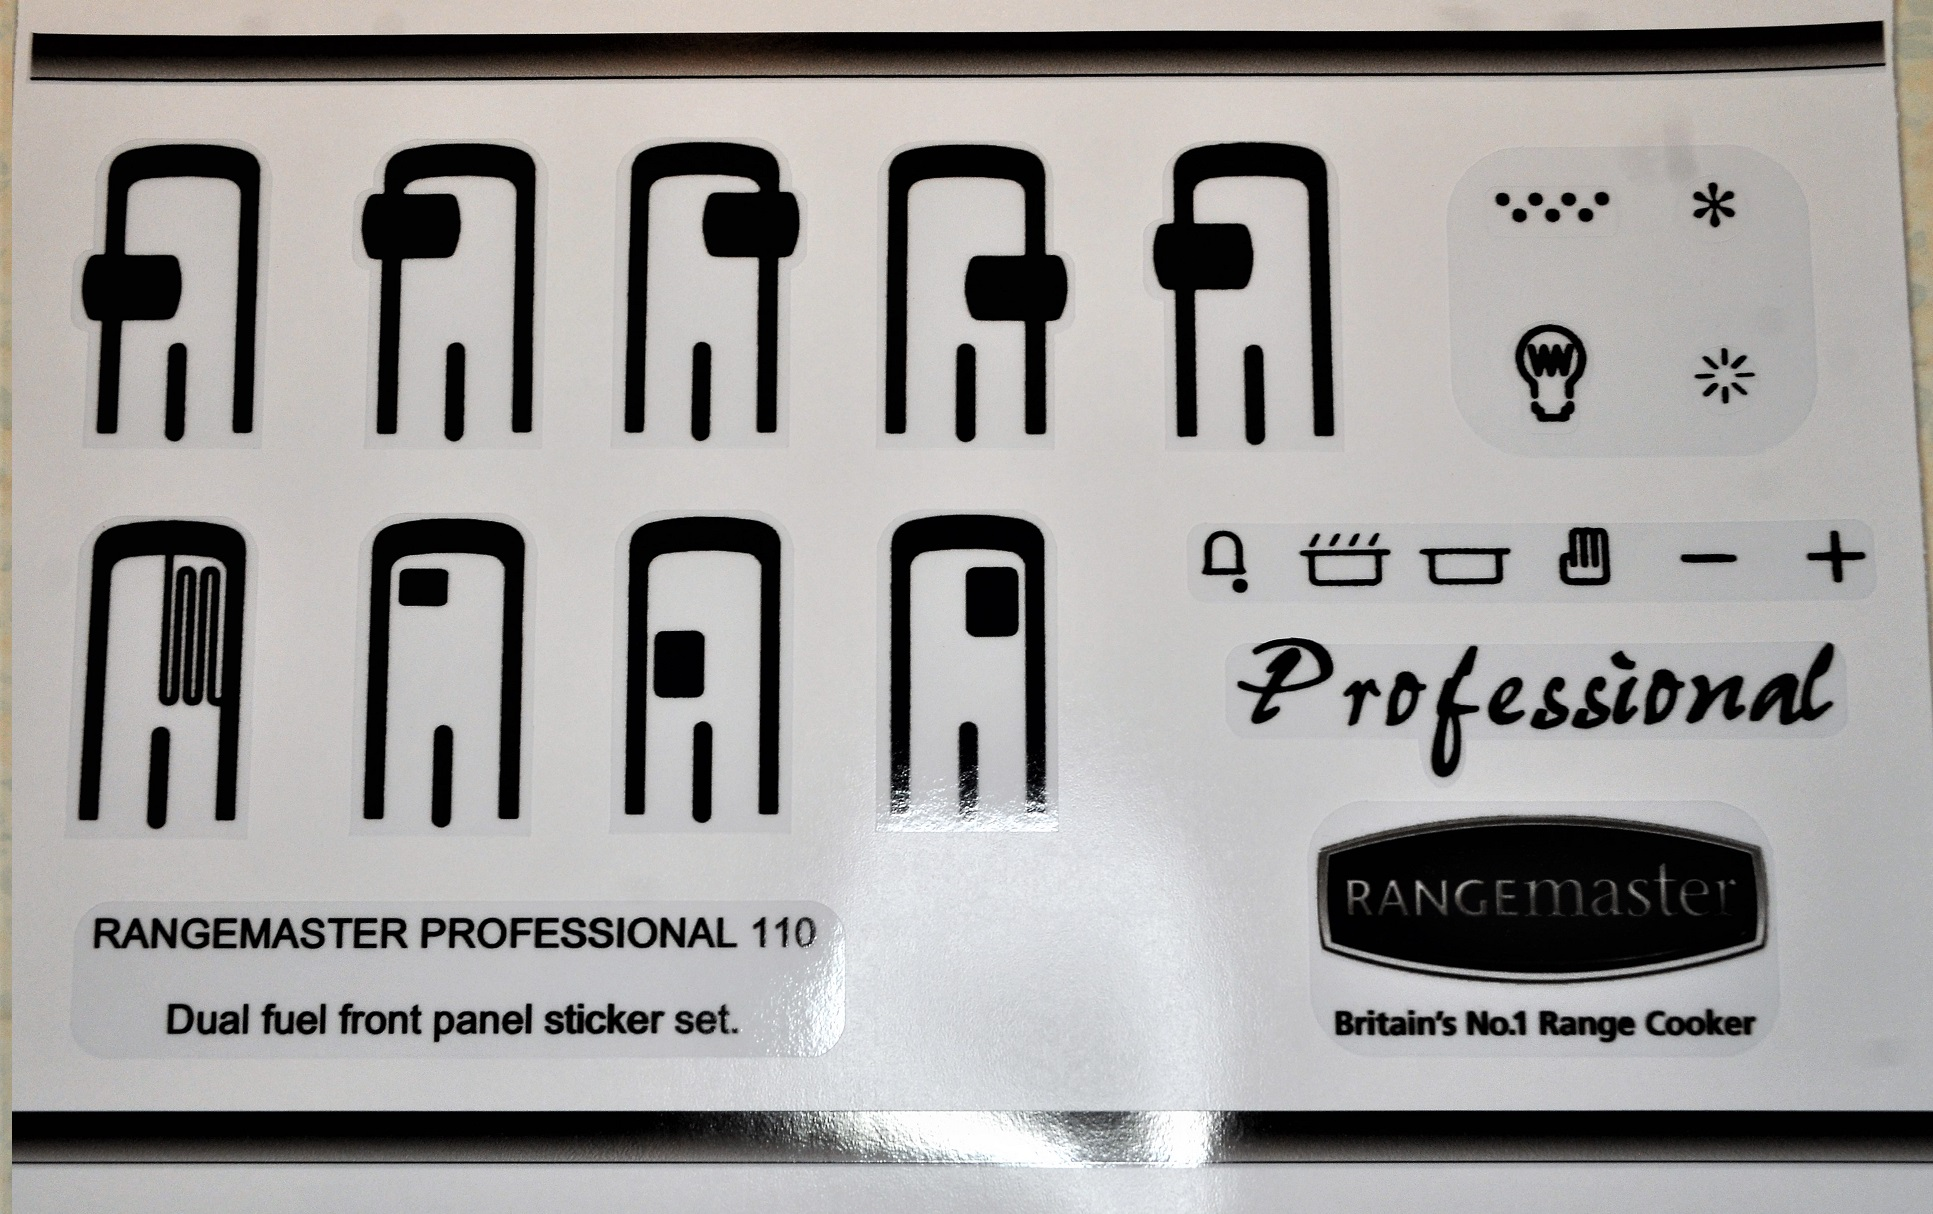 Rangemaster professional 110 dual fuel sticker set.